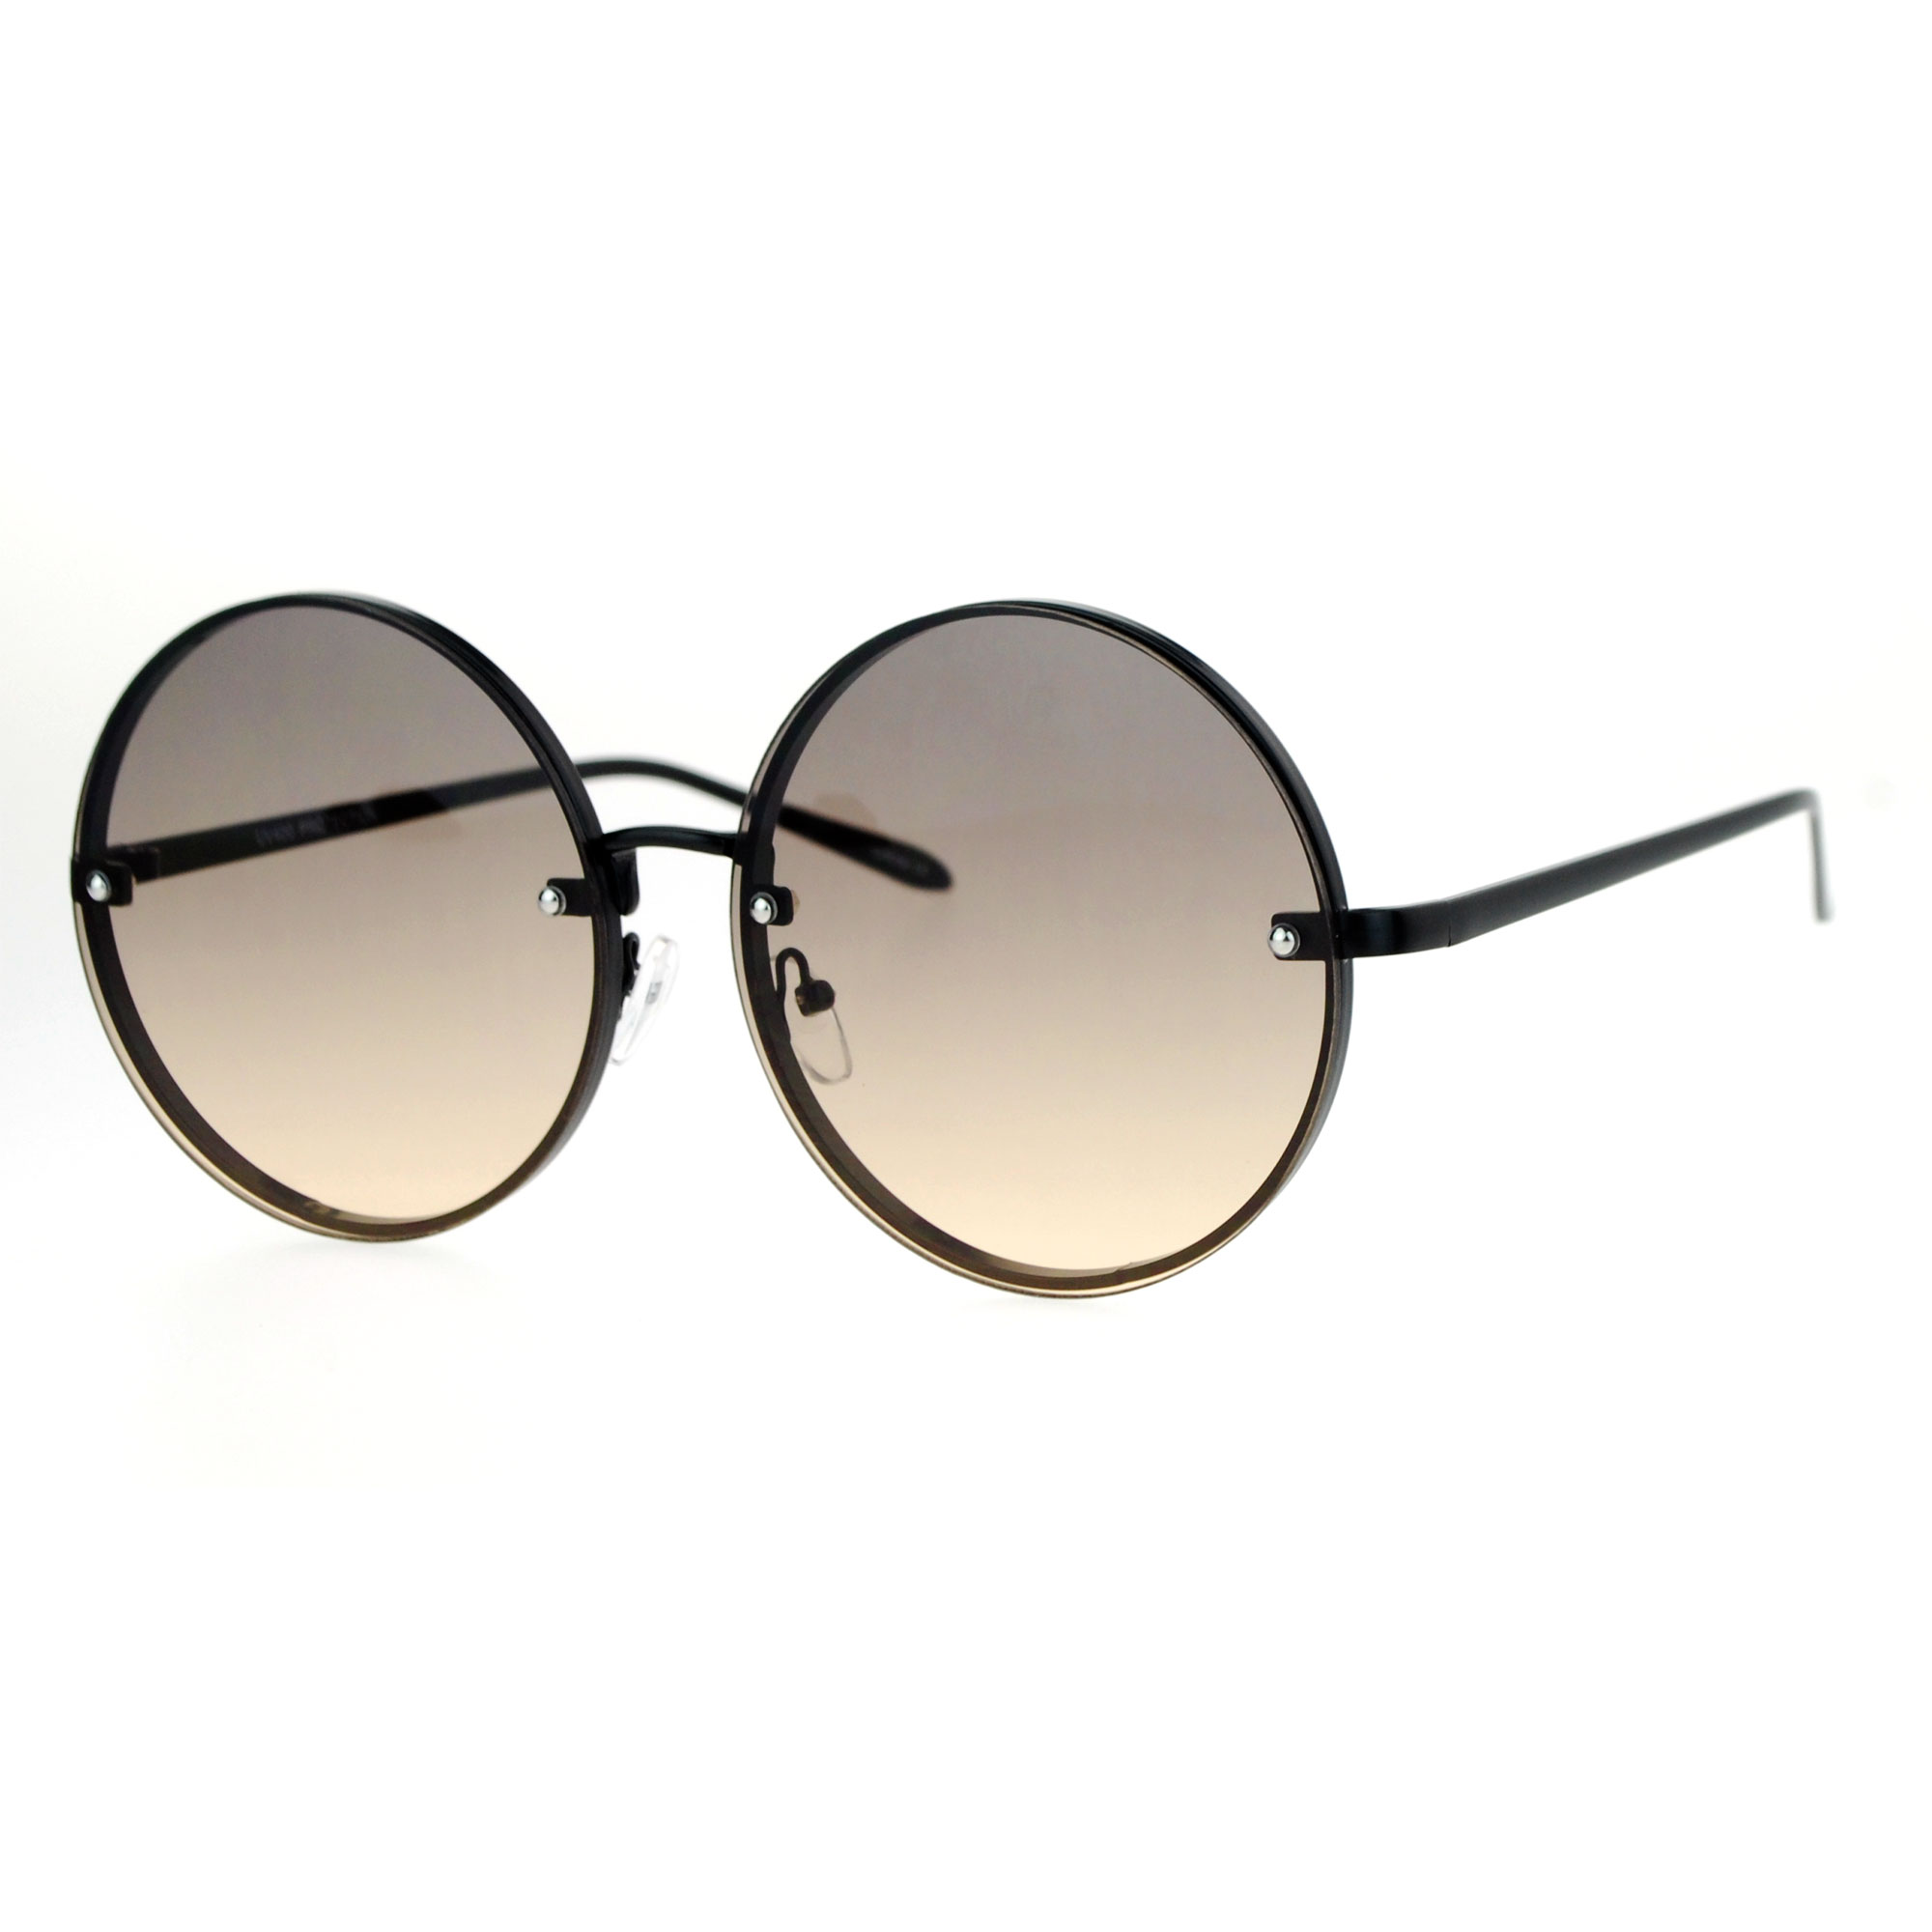 Rimless Glasses Round Lens : SA106 Rimless Hippie Round Circle Oceanic Color Lens ...